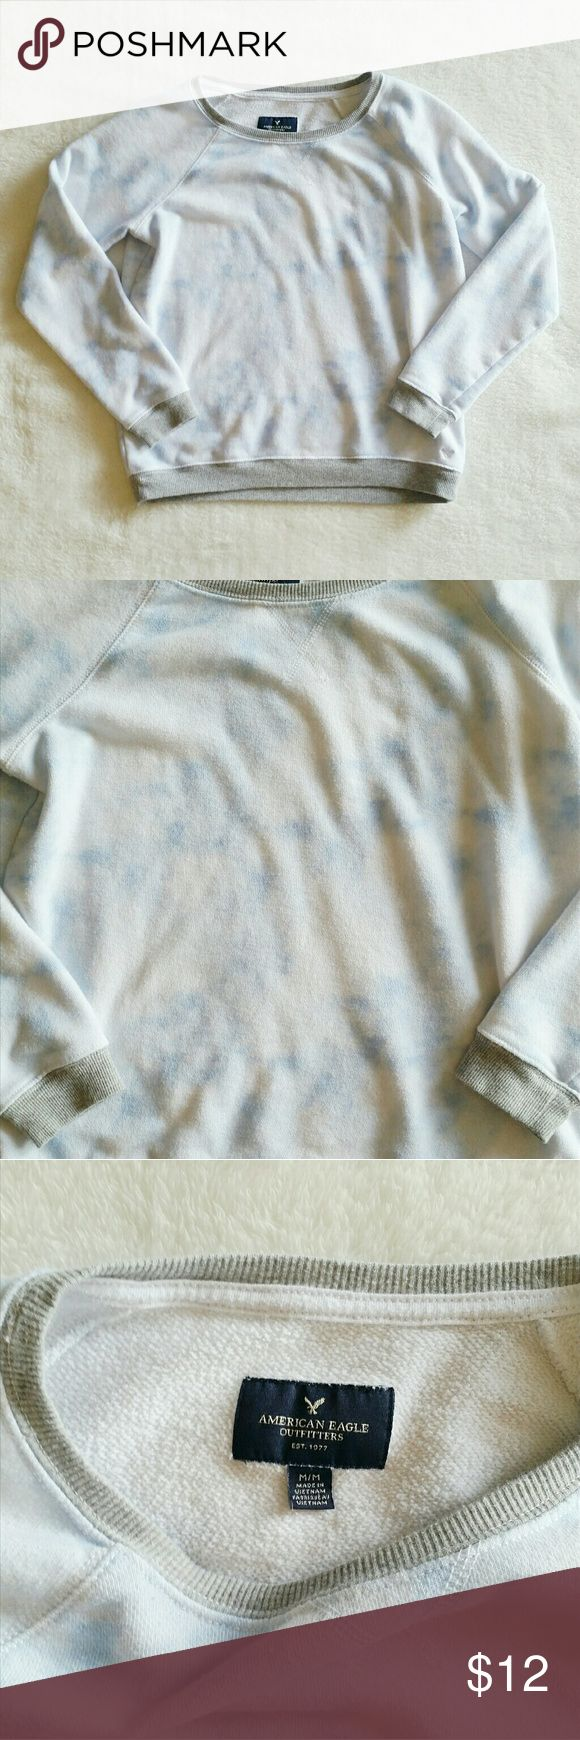 American Eagle Sweatshirt Cool sweatshirt from American Eagle Outfitters. Size medium. Has a tie dye or watercolor design to it. Normal wash wear. American Eagle Outfitters Sweaters